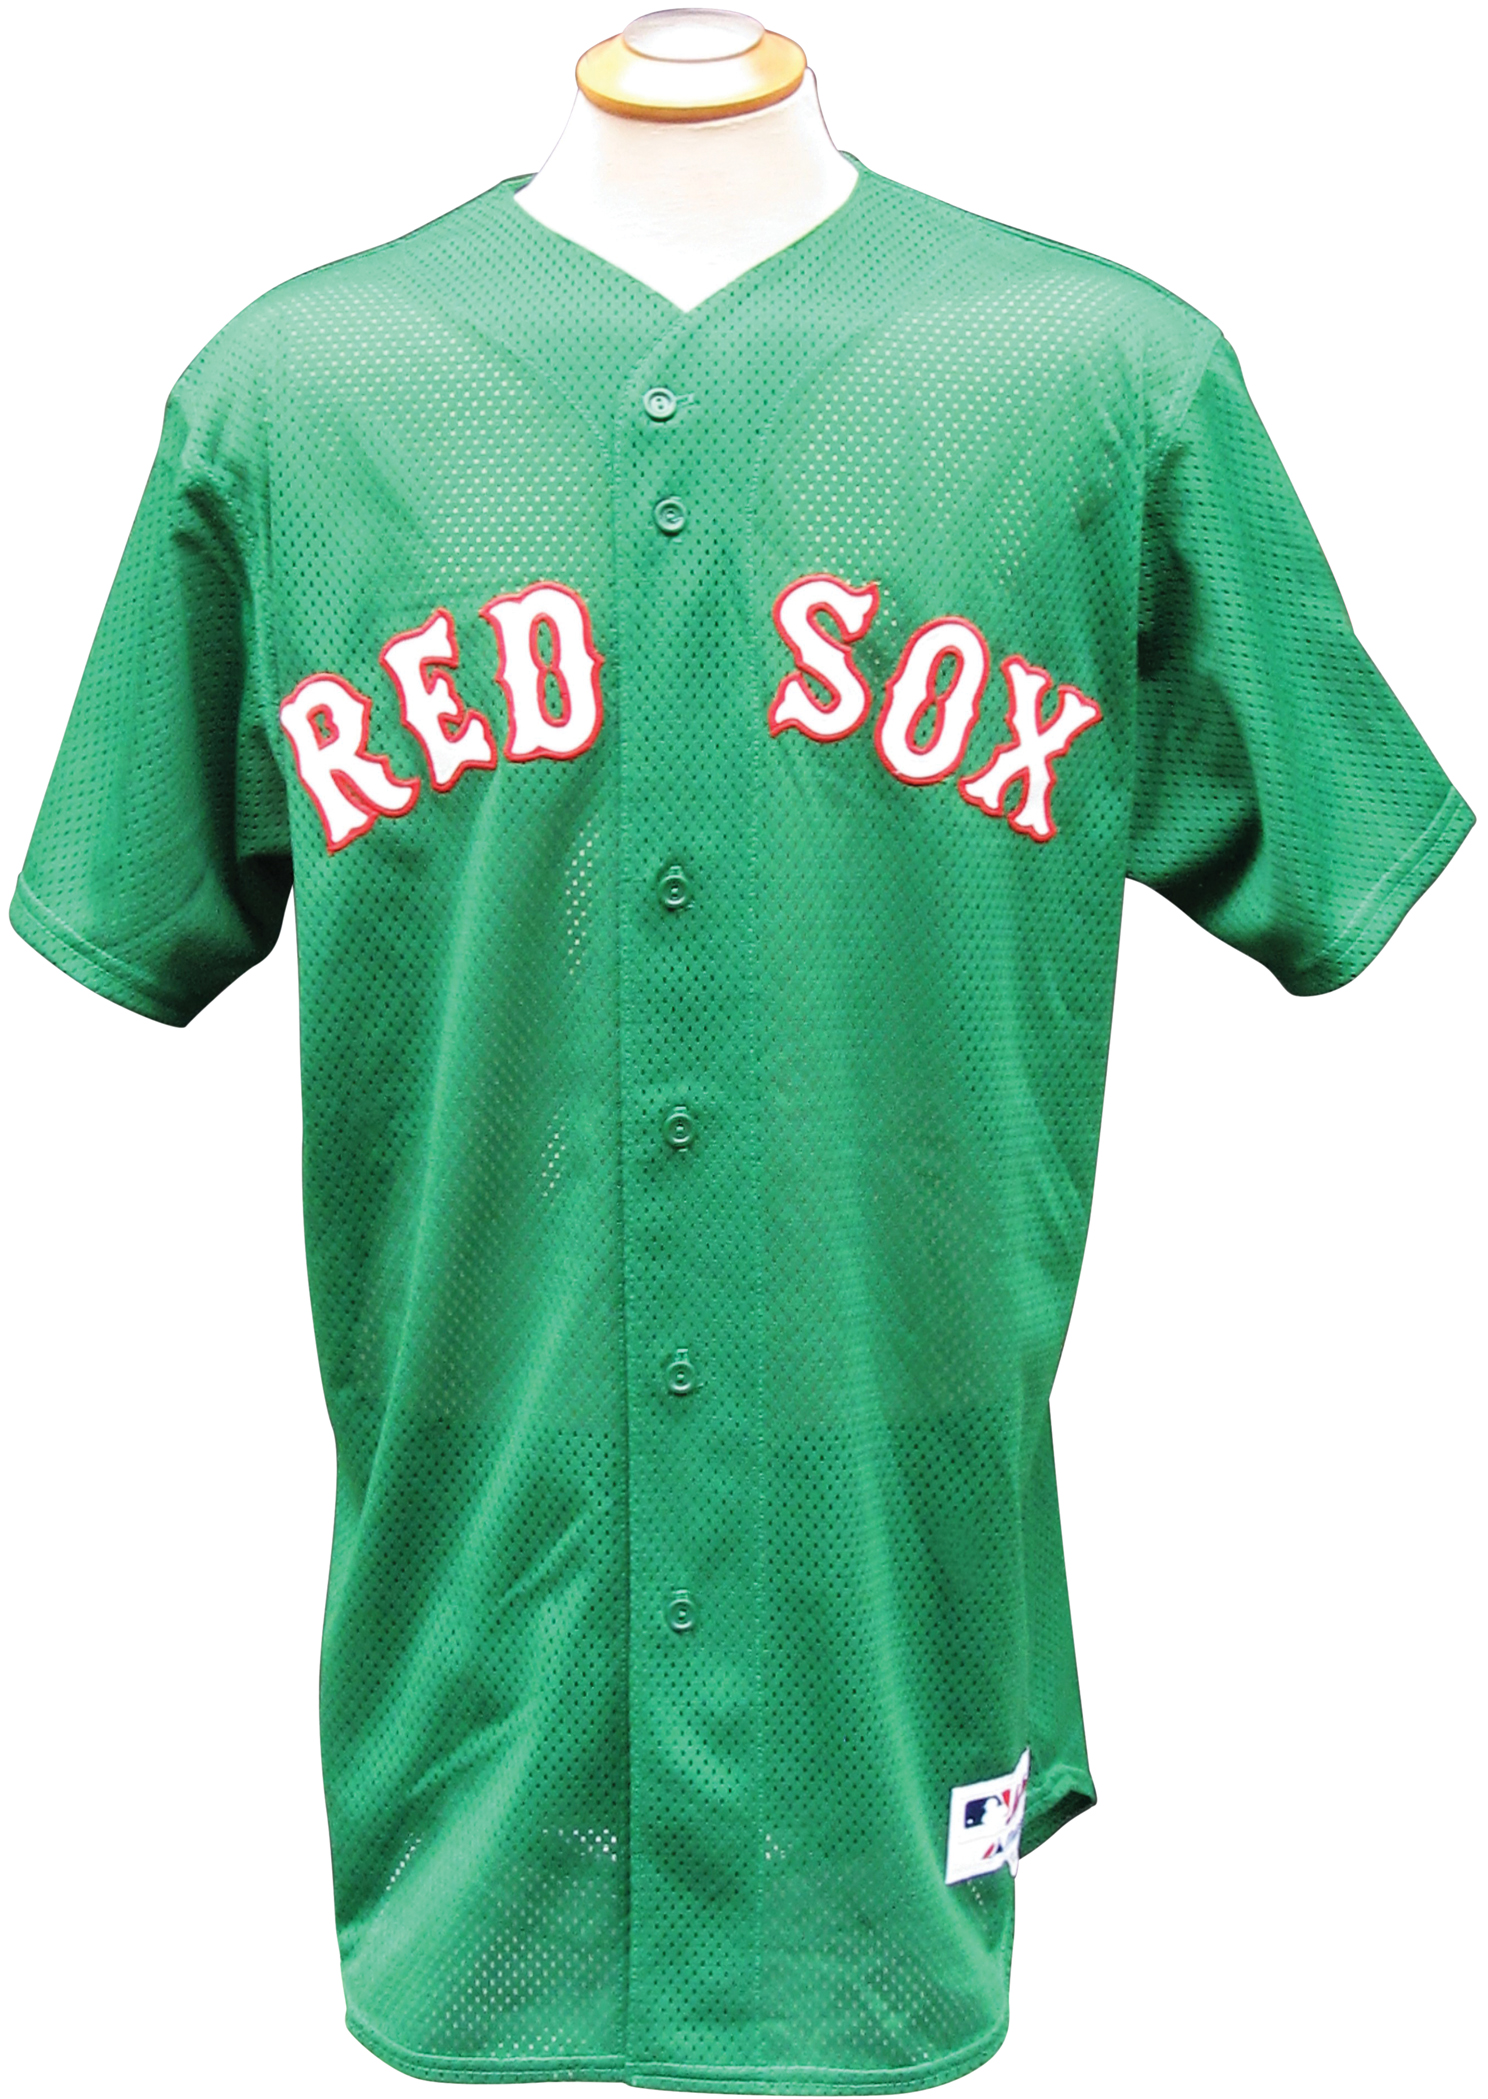 db1f605484a ... 2007 TIM WAKEFIELD BOSTON RED SOX ST. PATRICKS DAY GAME USED JERSEY ...